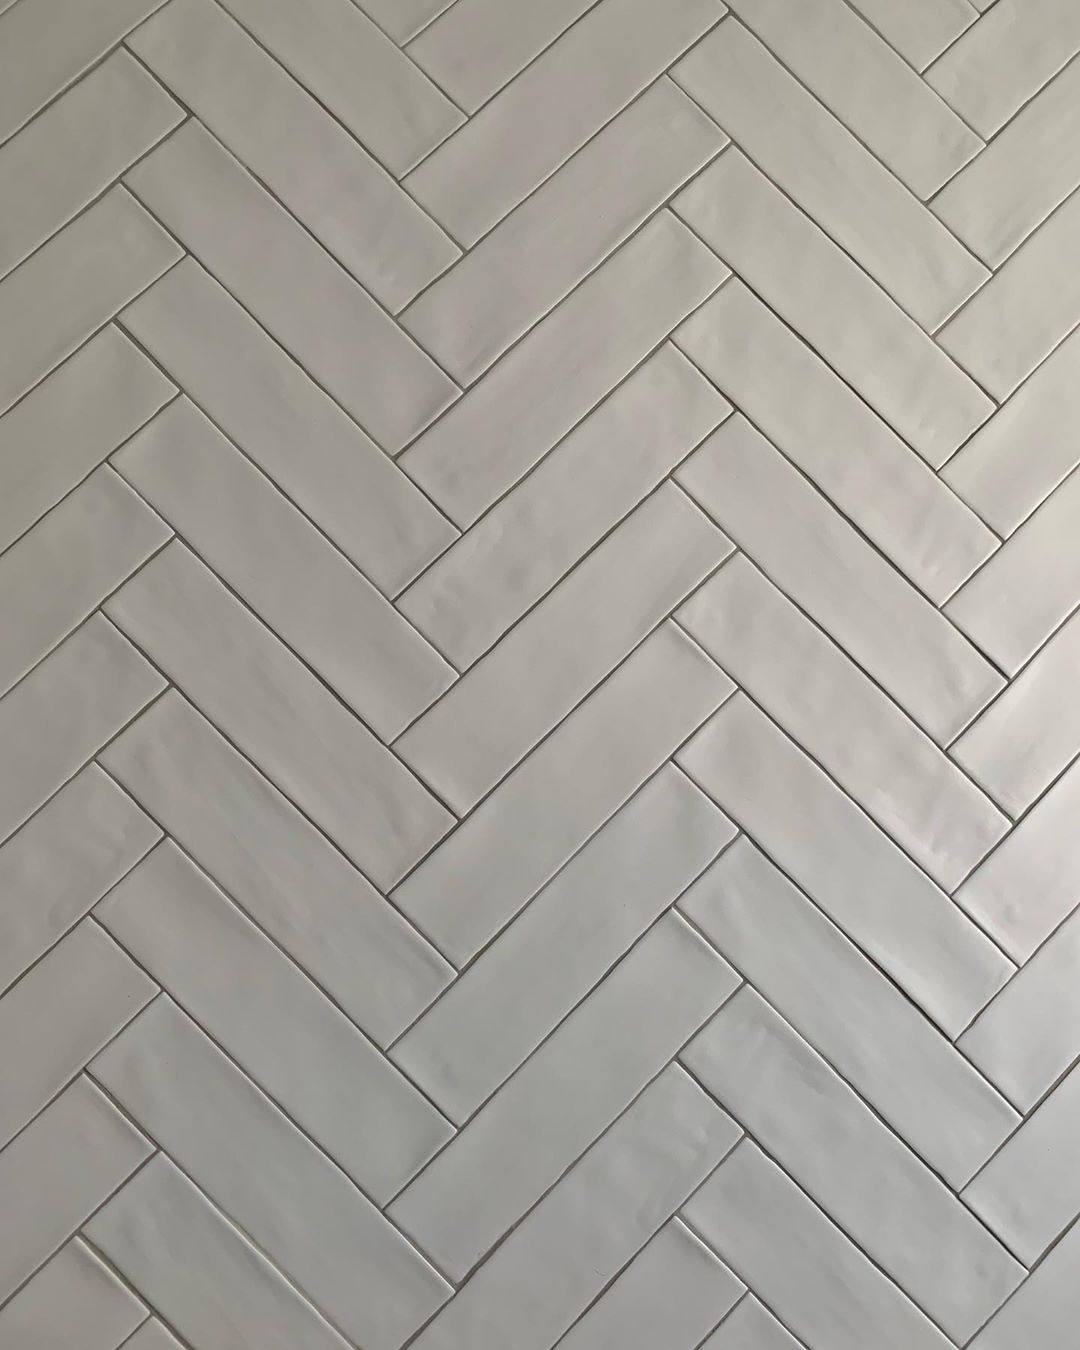 Tilecloud On Instagram Texture Texture Texture Herringbone Is The Perfect Way Herringbone Wall Tile Textured Tile Backsplash White Subway Tile Backsplash